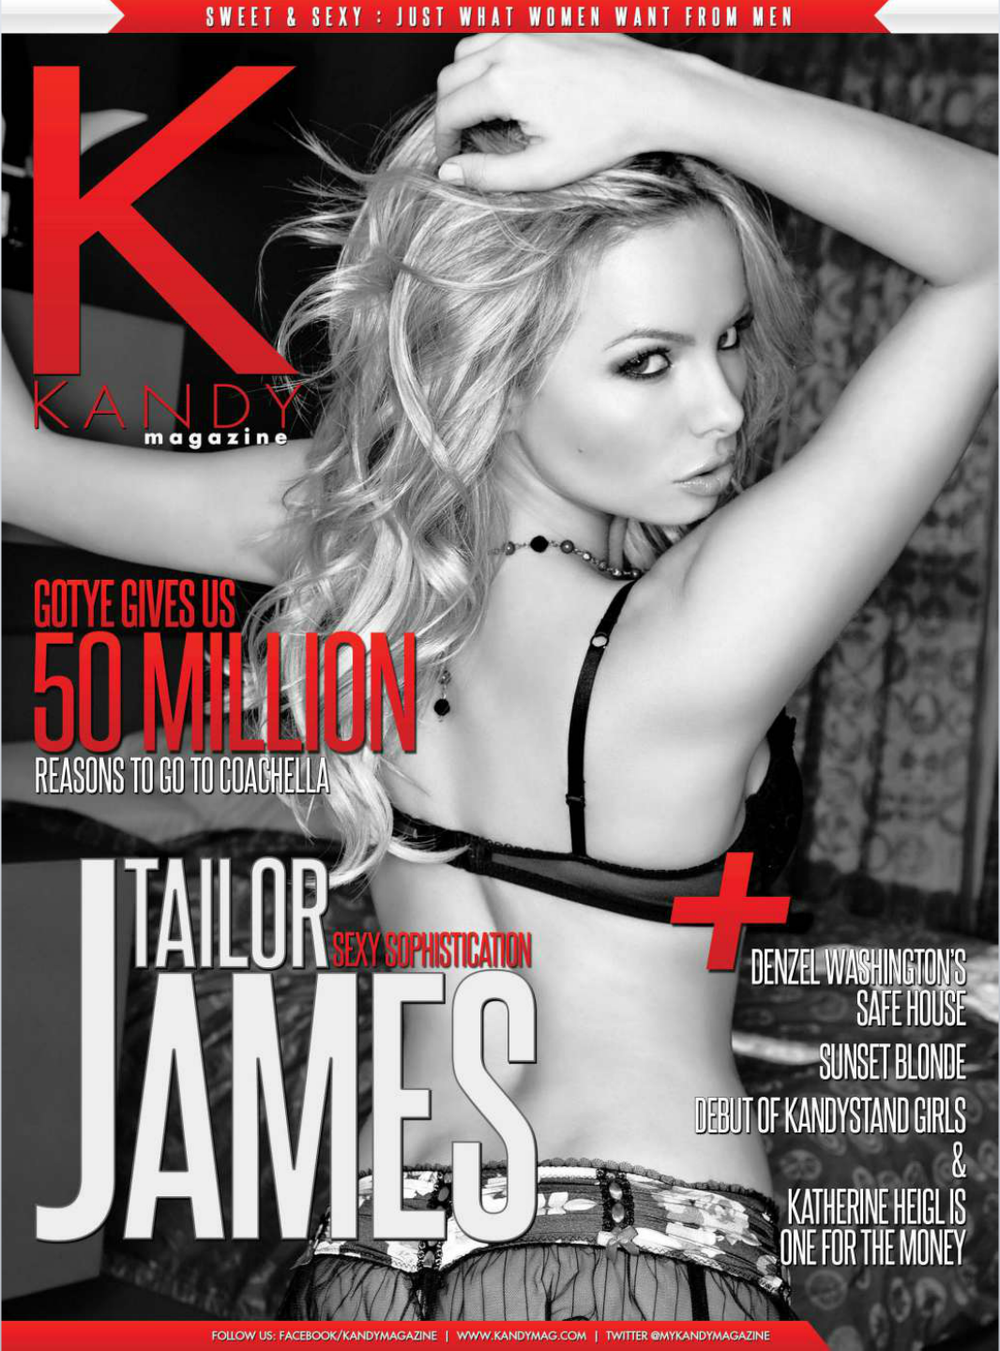 Studio V Photography Tailor James magazine